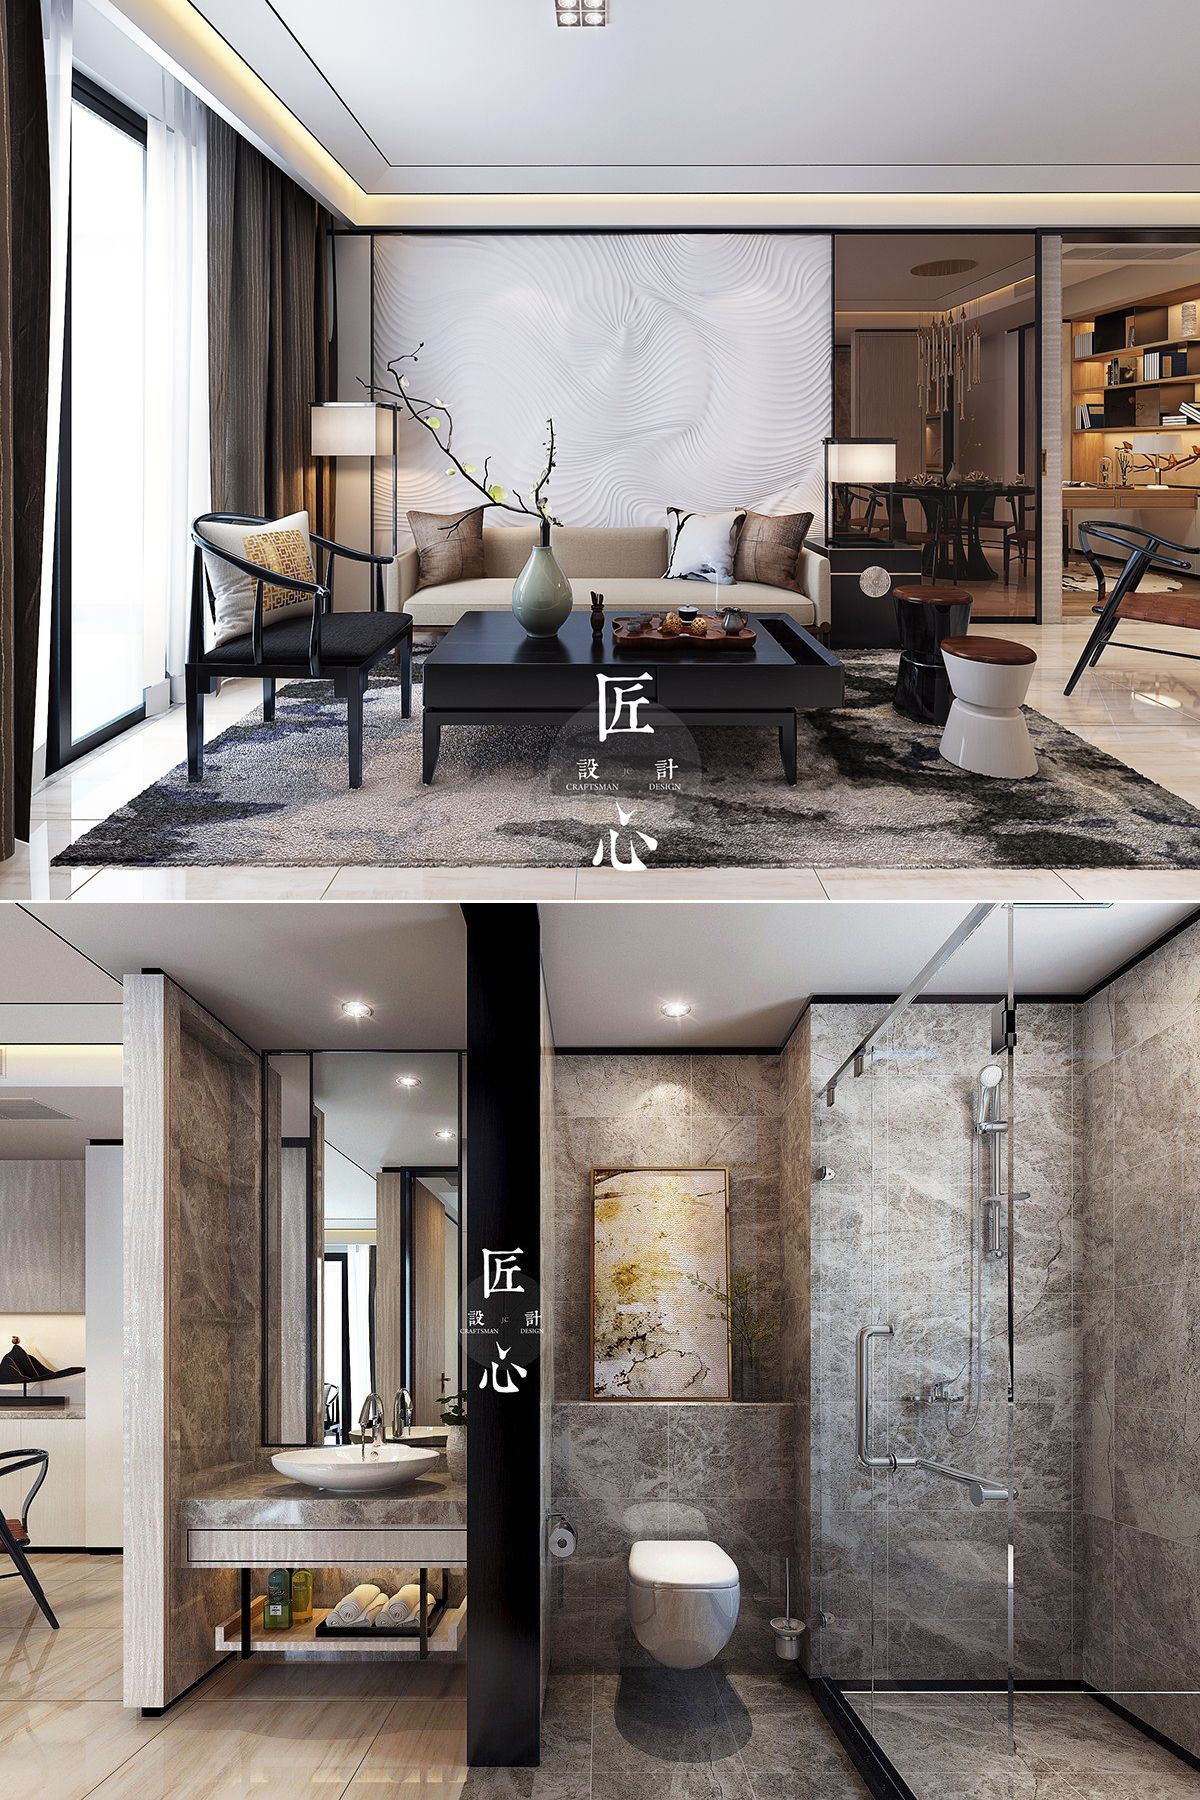 Home Designing | Inside Out | Pinterest | Modern interiors and ...